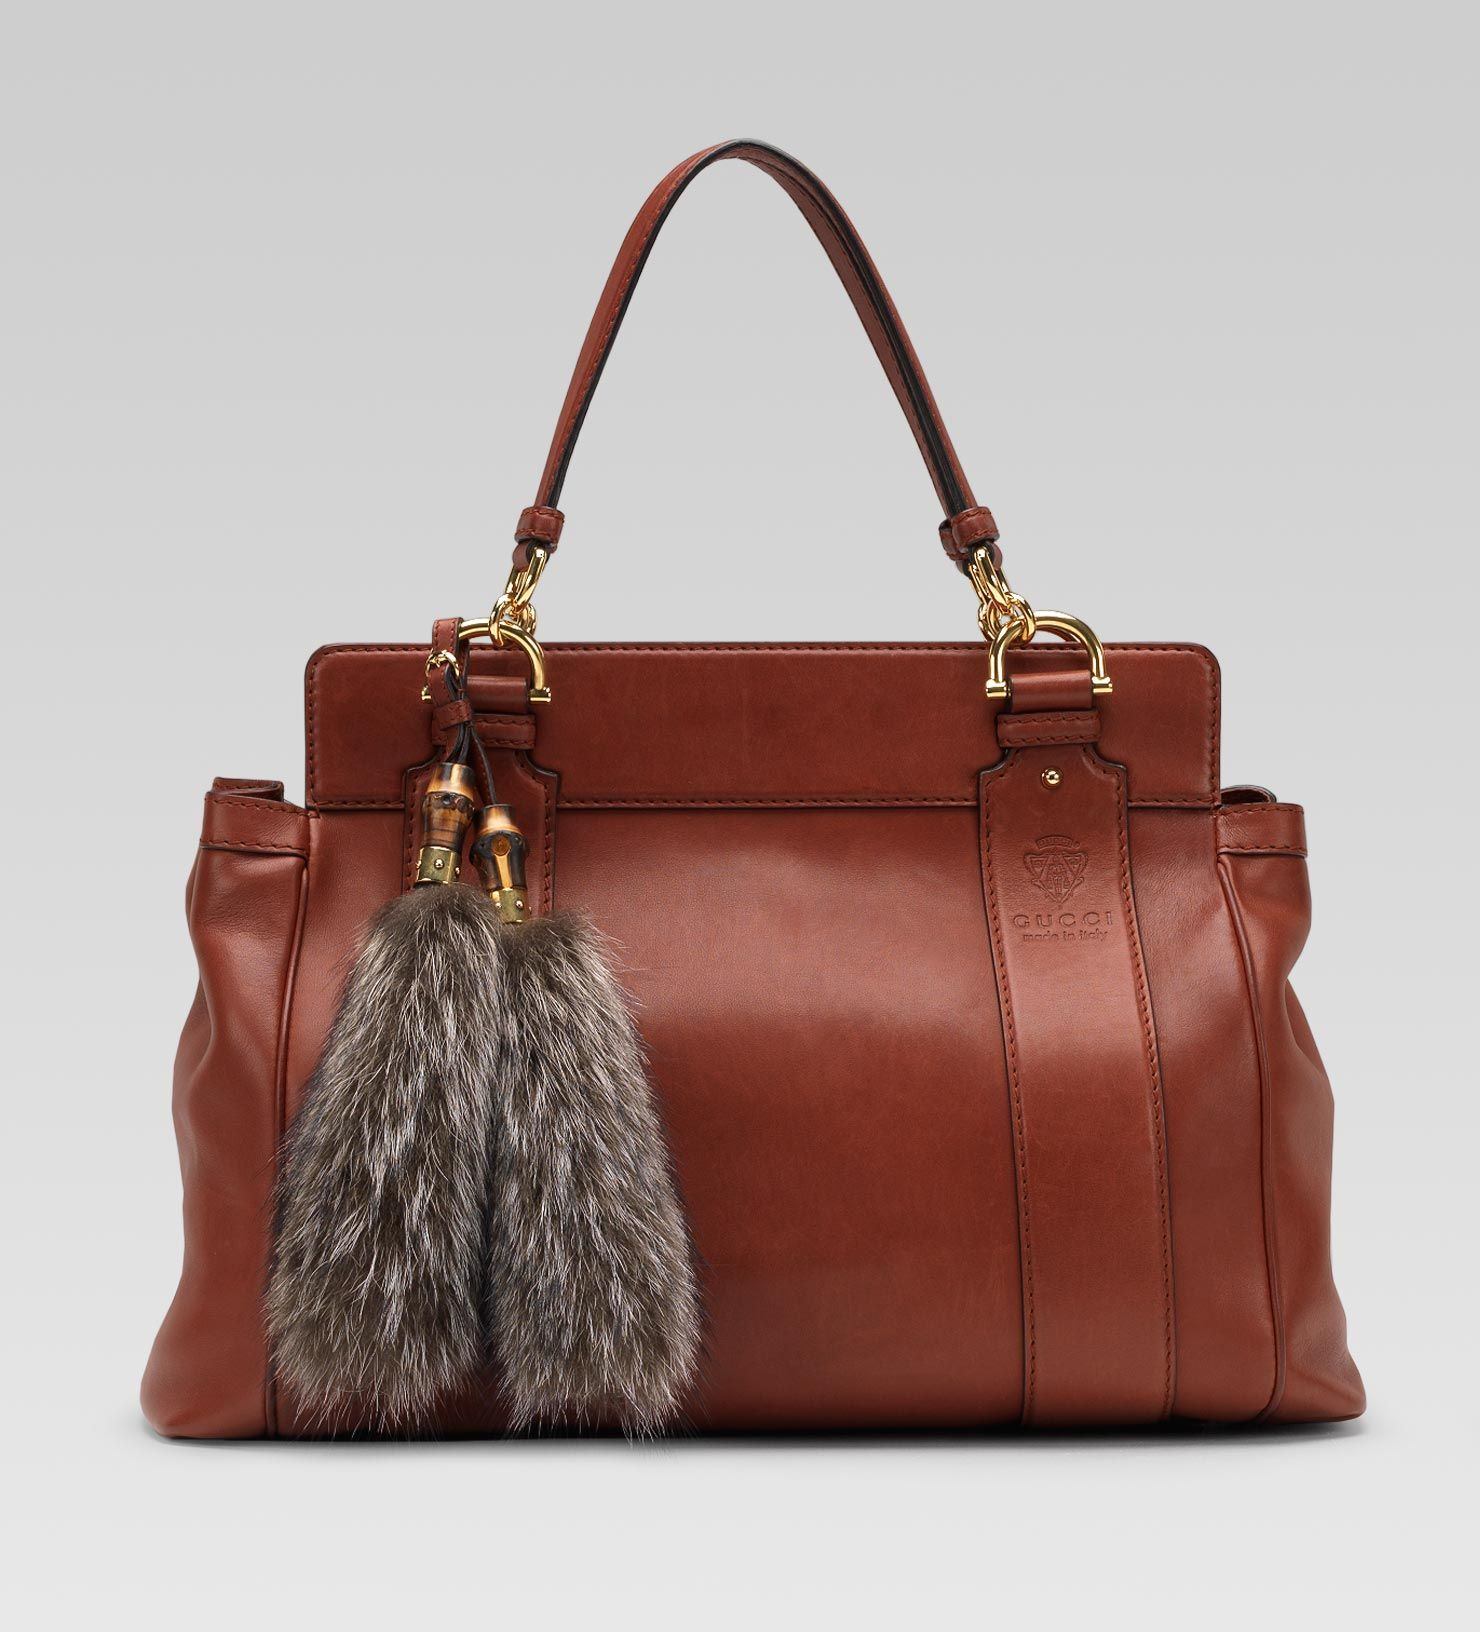 858db4b3eef Do I really need to describe this Gucci bag  My heart flutters so...perfect  size.